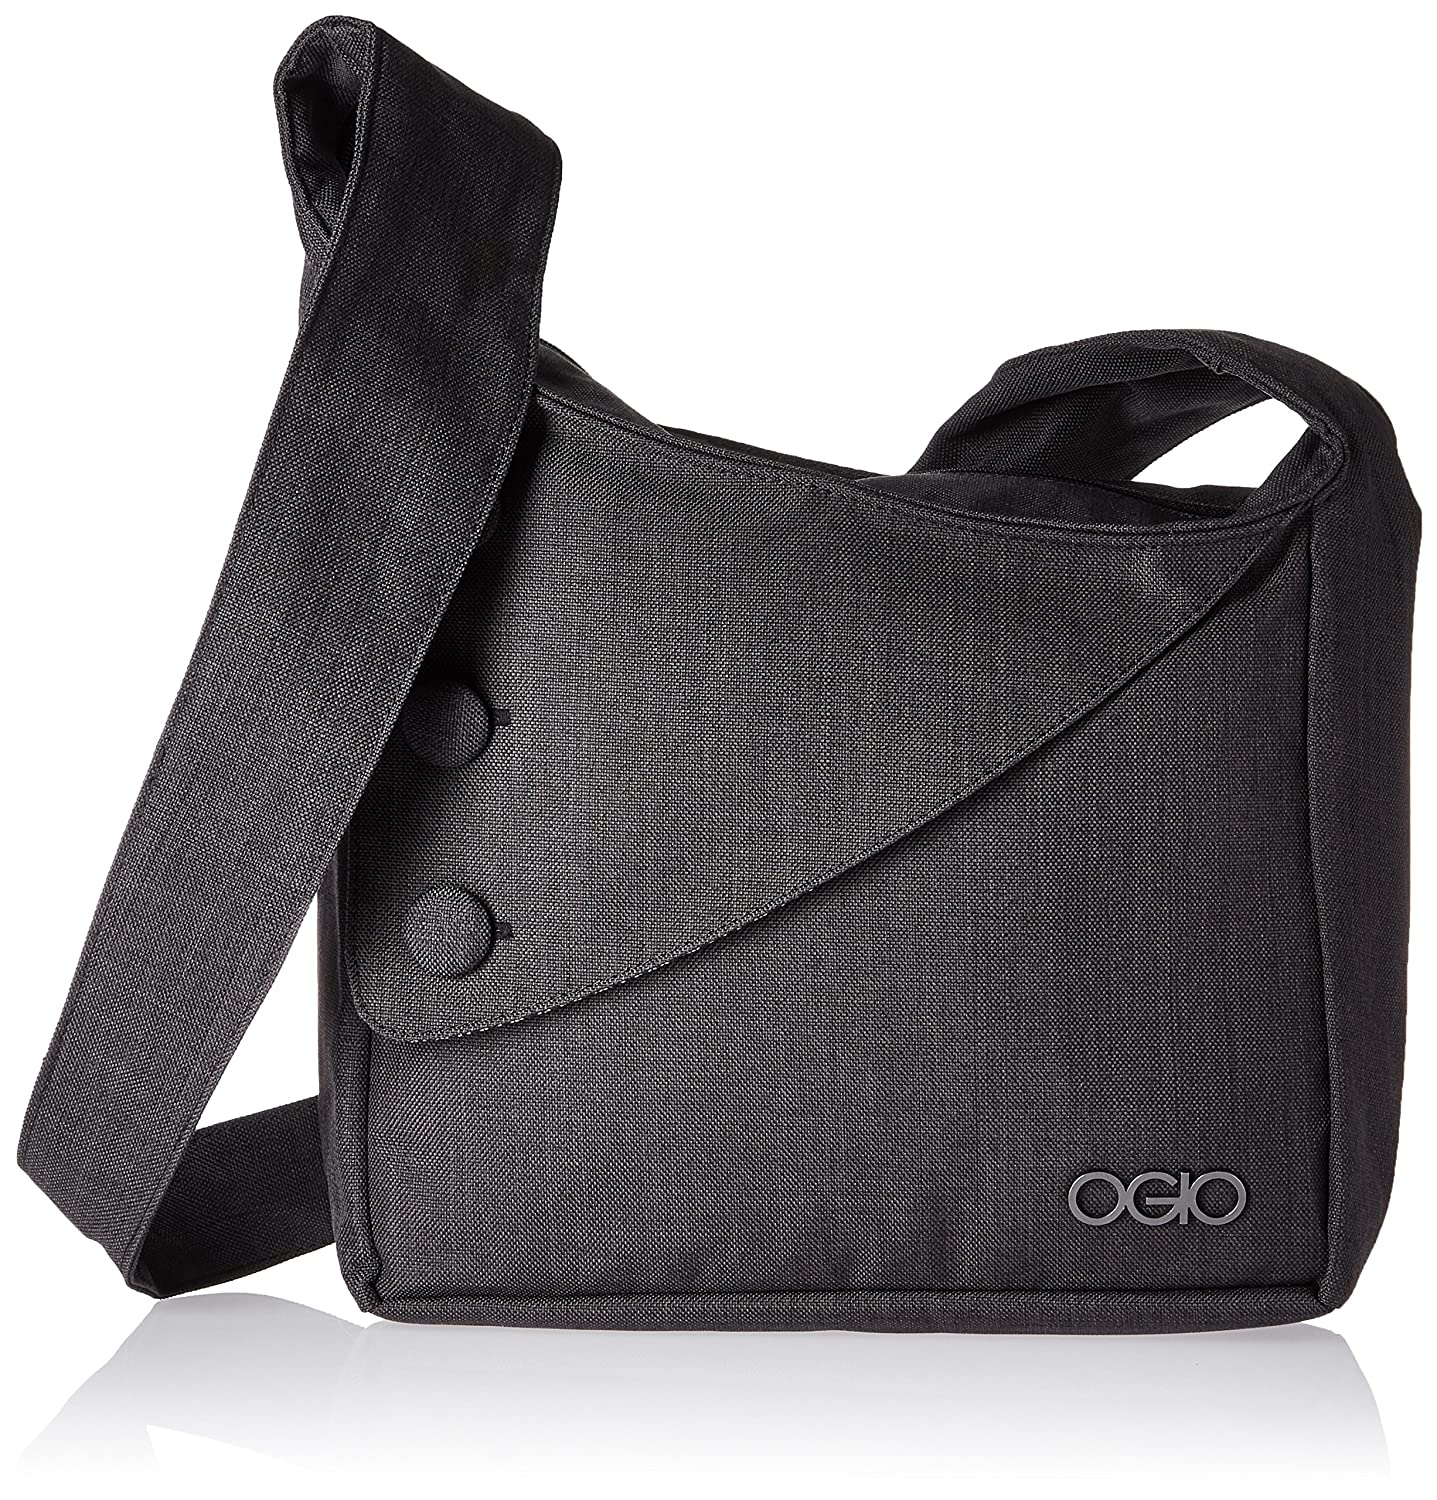 Ogio Lifestyle 2015 Brooklyn Purse Black Mochila Tipo Casual, 30 litros: Amazon.es: Zapatos y complementos